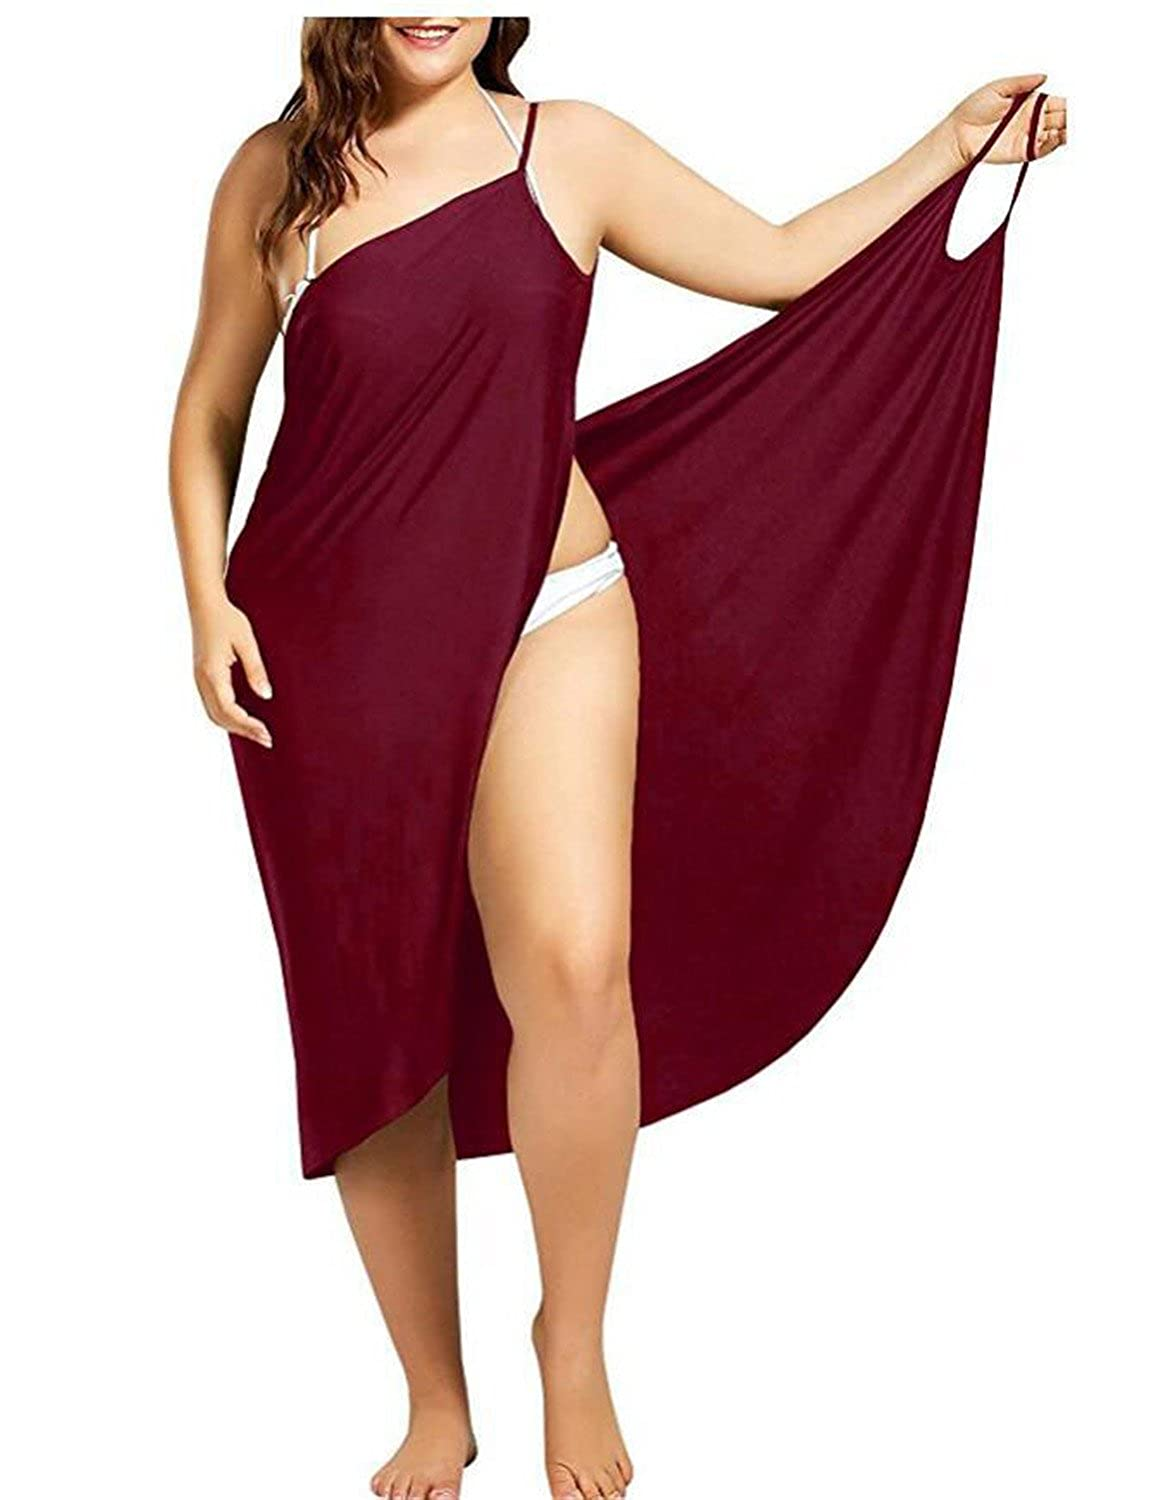 Maroon Backless Dresses